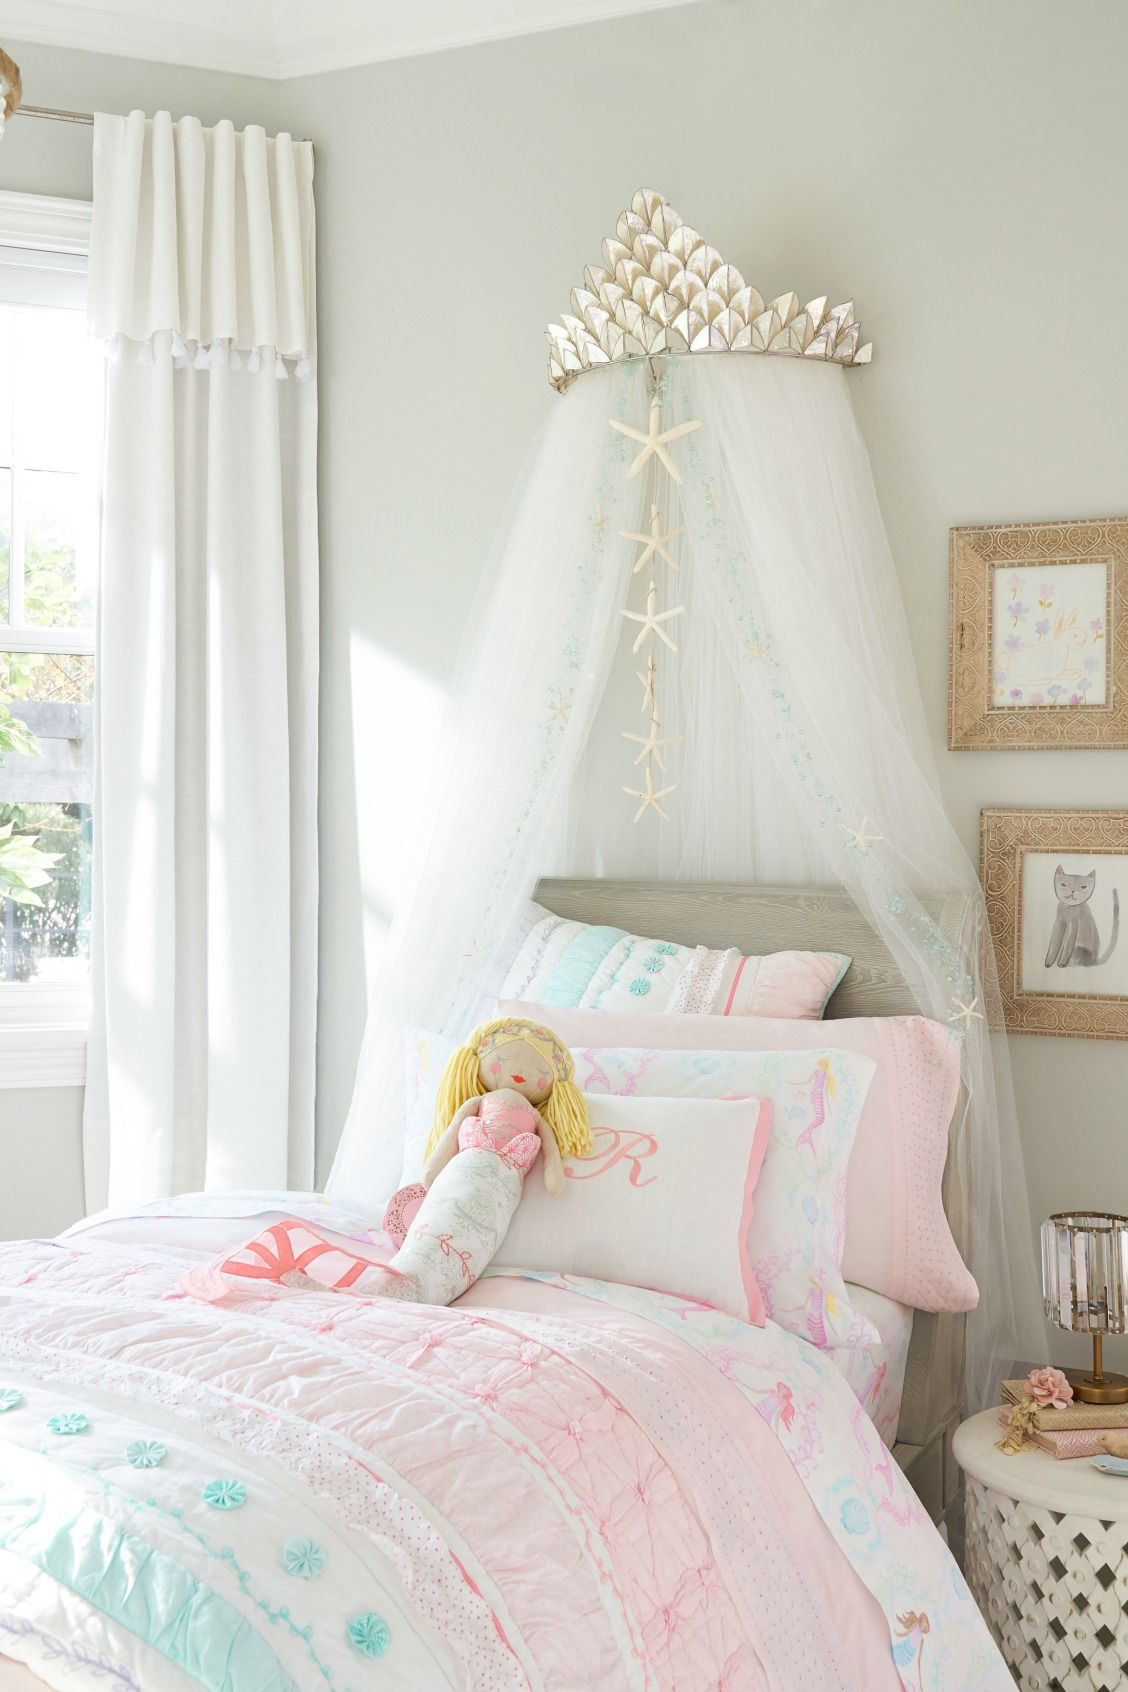 e10a4ff09 Add seaside accents to your Girl's Room with our Capiz Cornice & Glitter  Tulle Sheers.